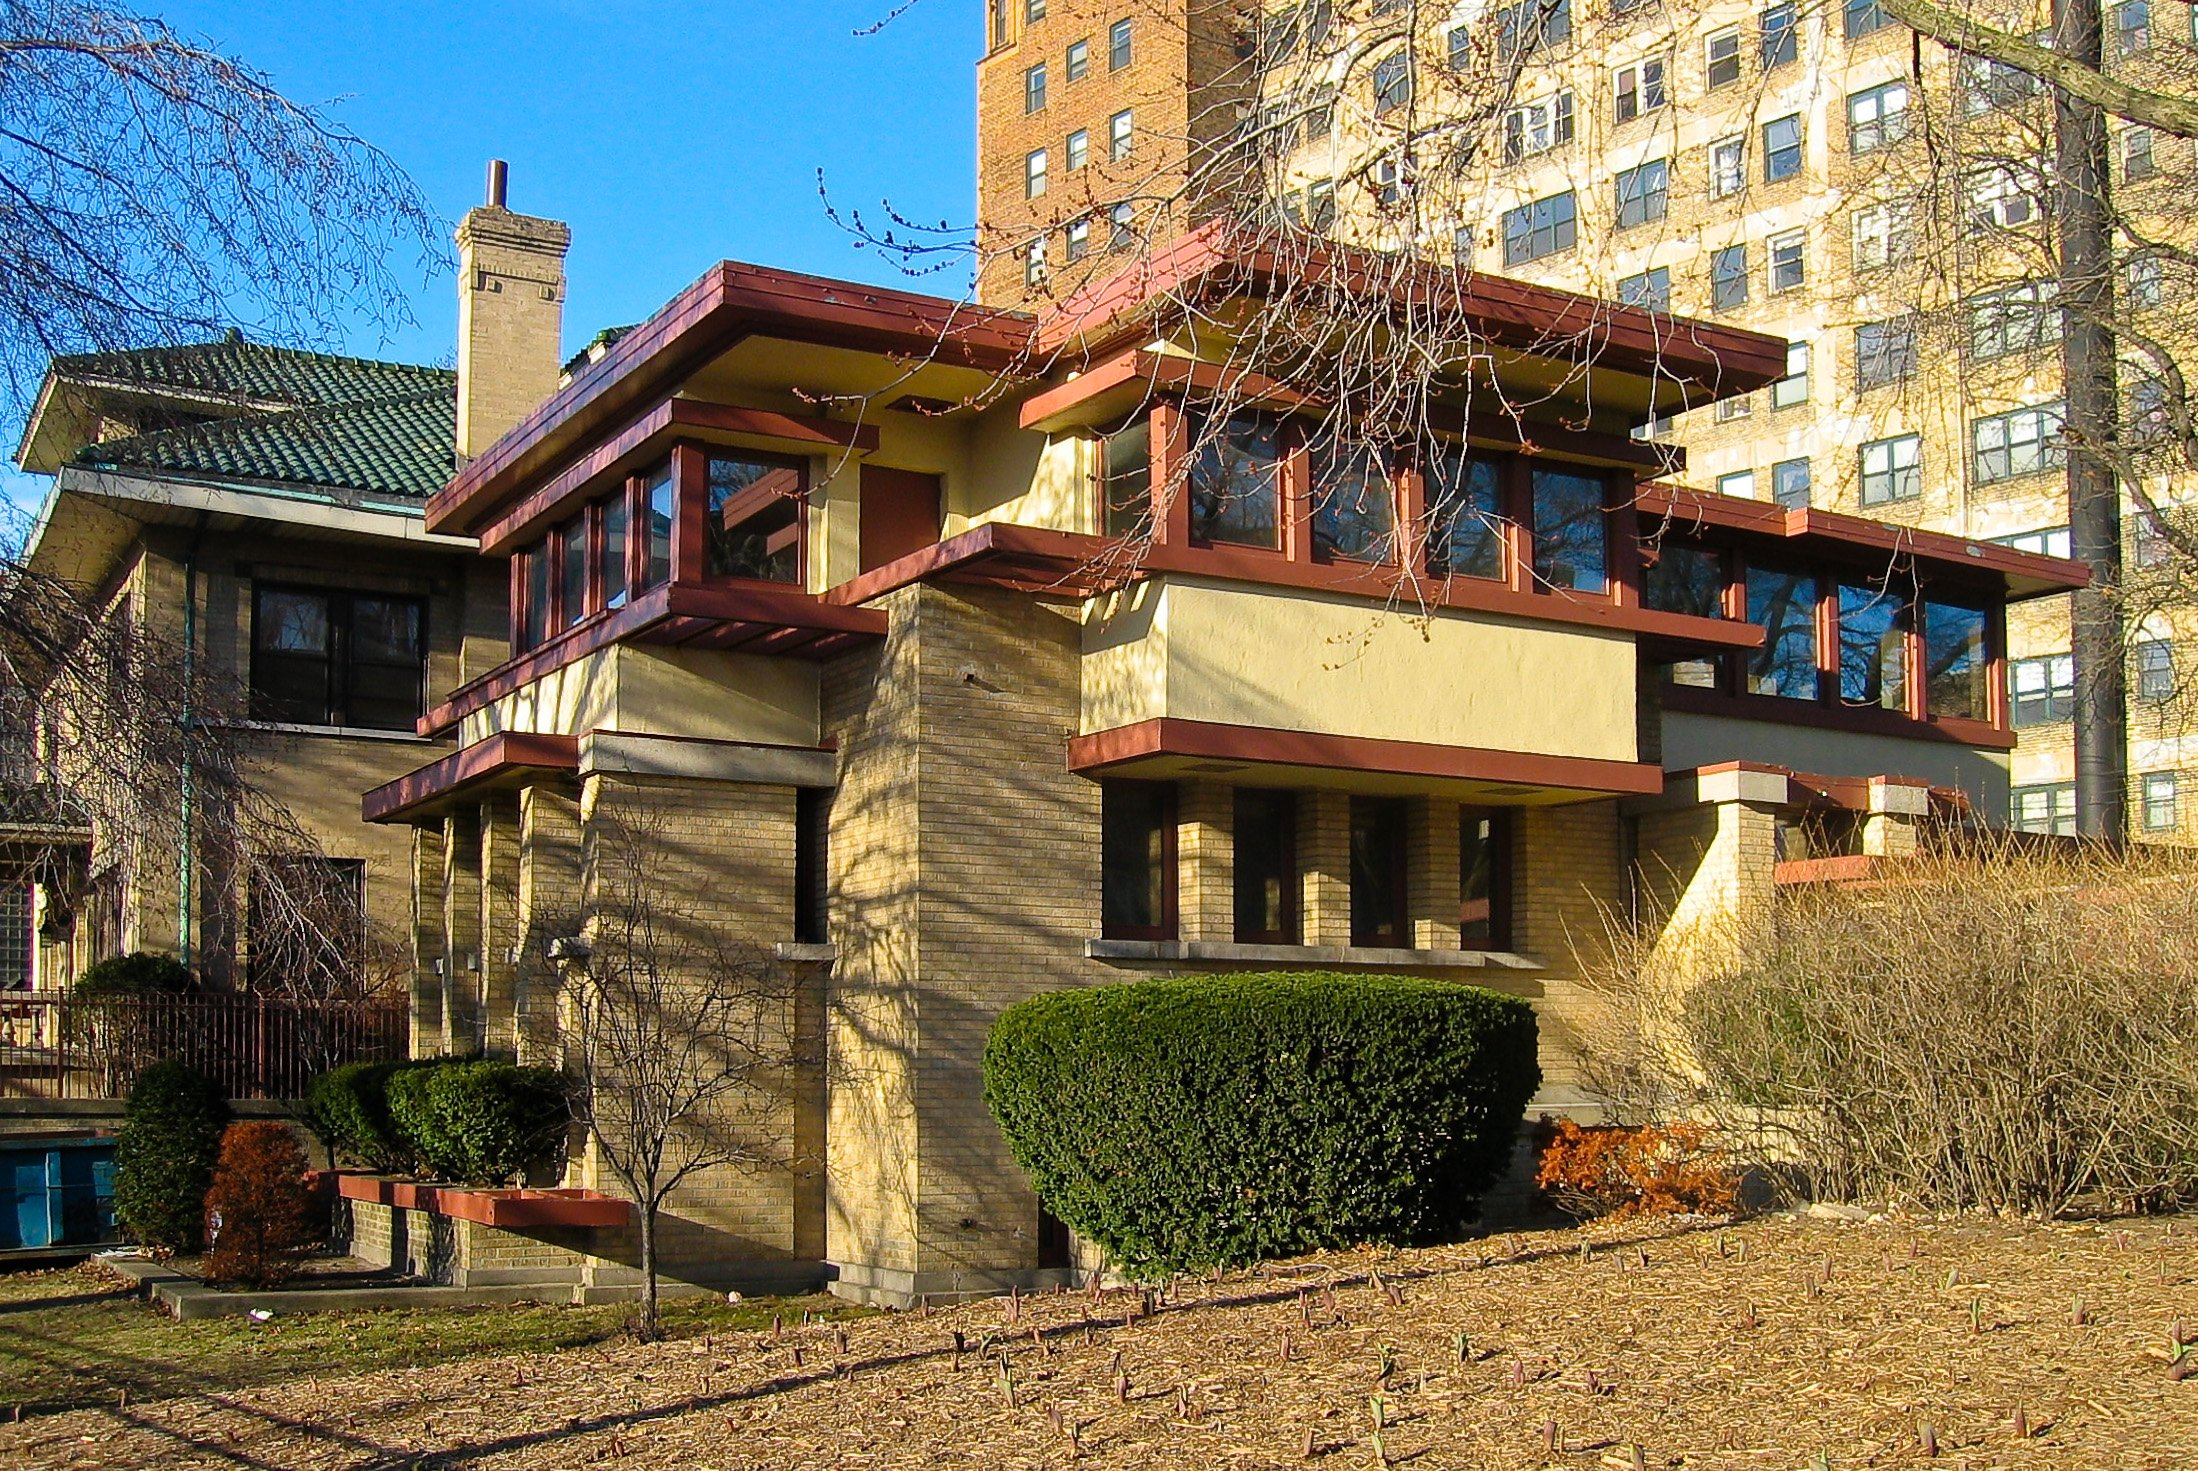 Emil Bach House (1915), Rogers Park neighborhood in Chicago, IL.